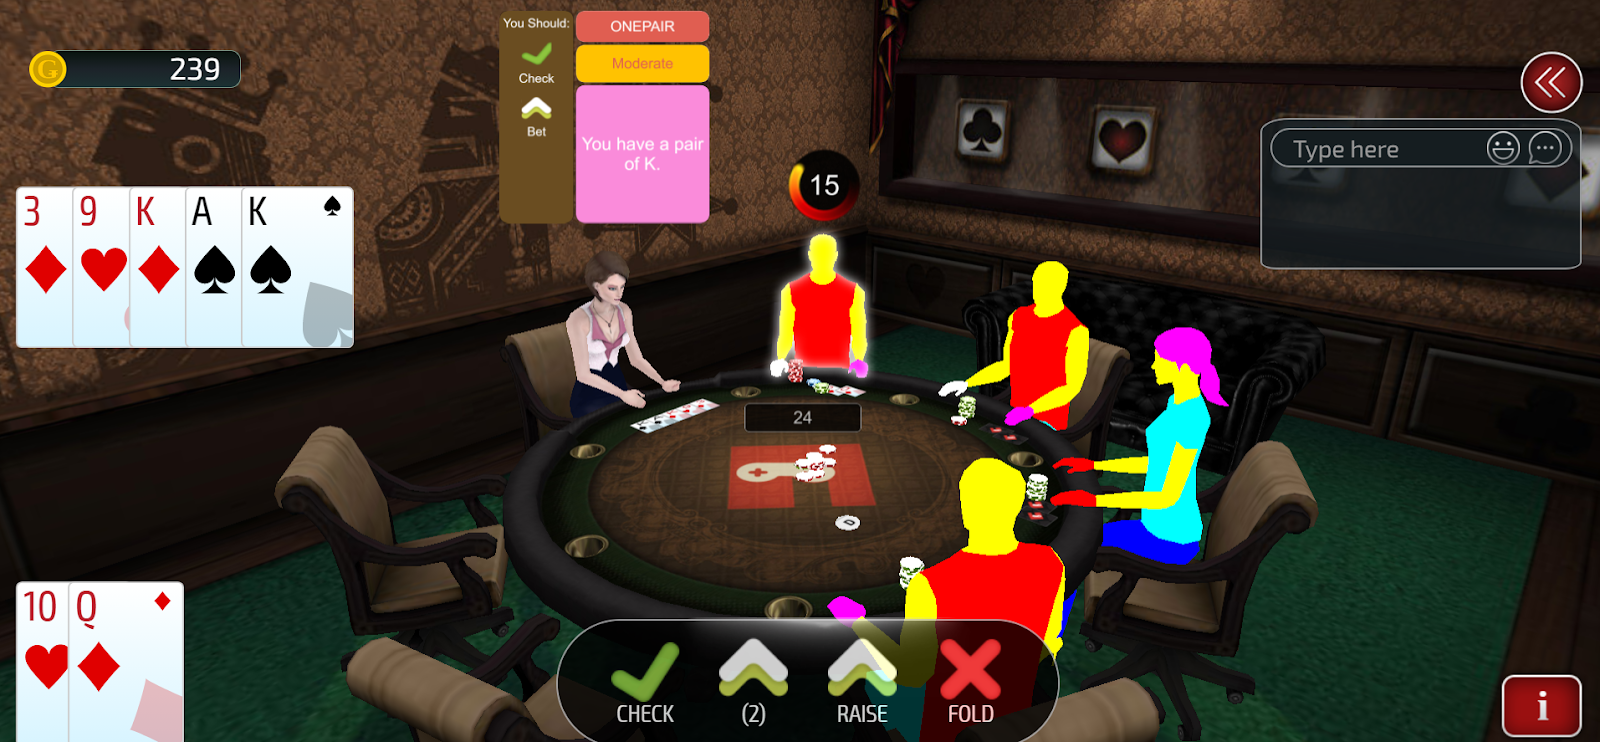 Players learning Poker in Gamentio classroom